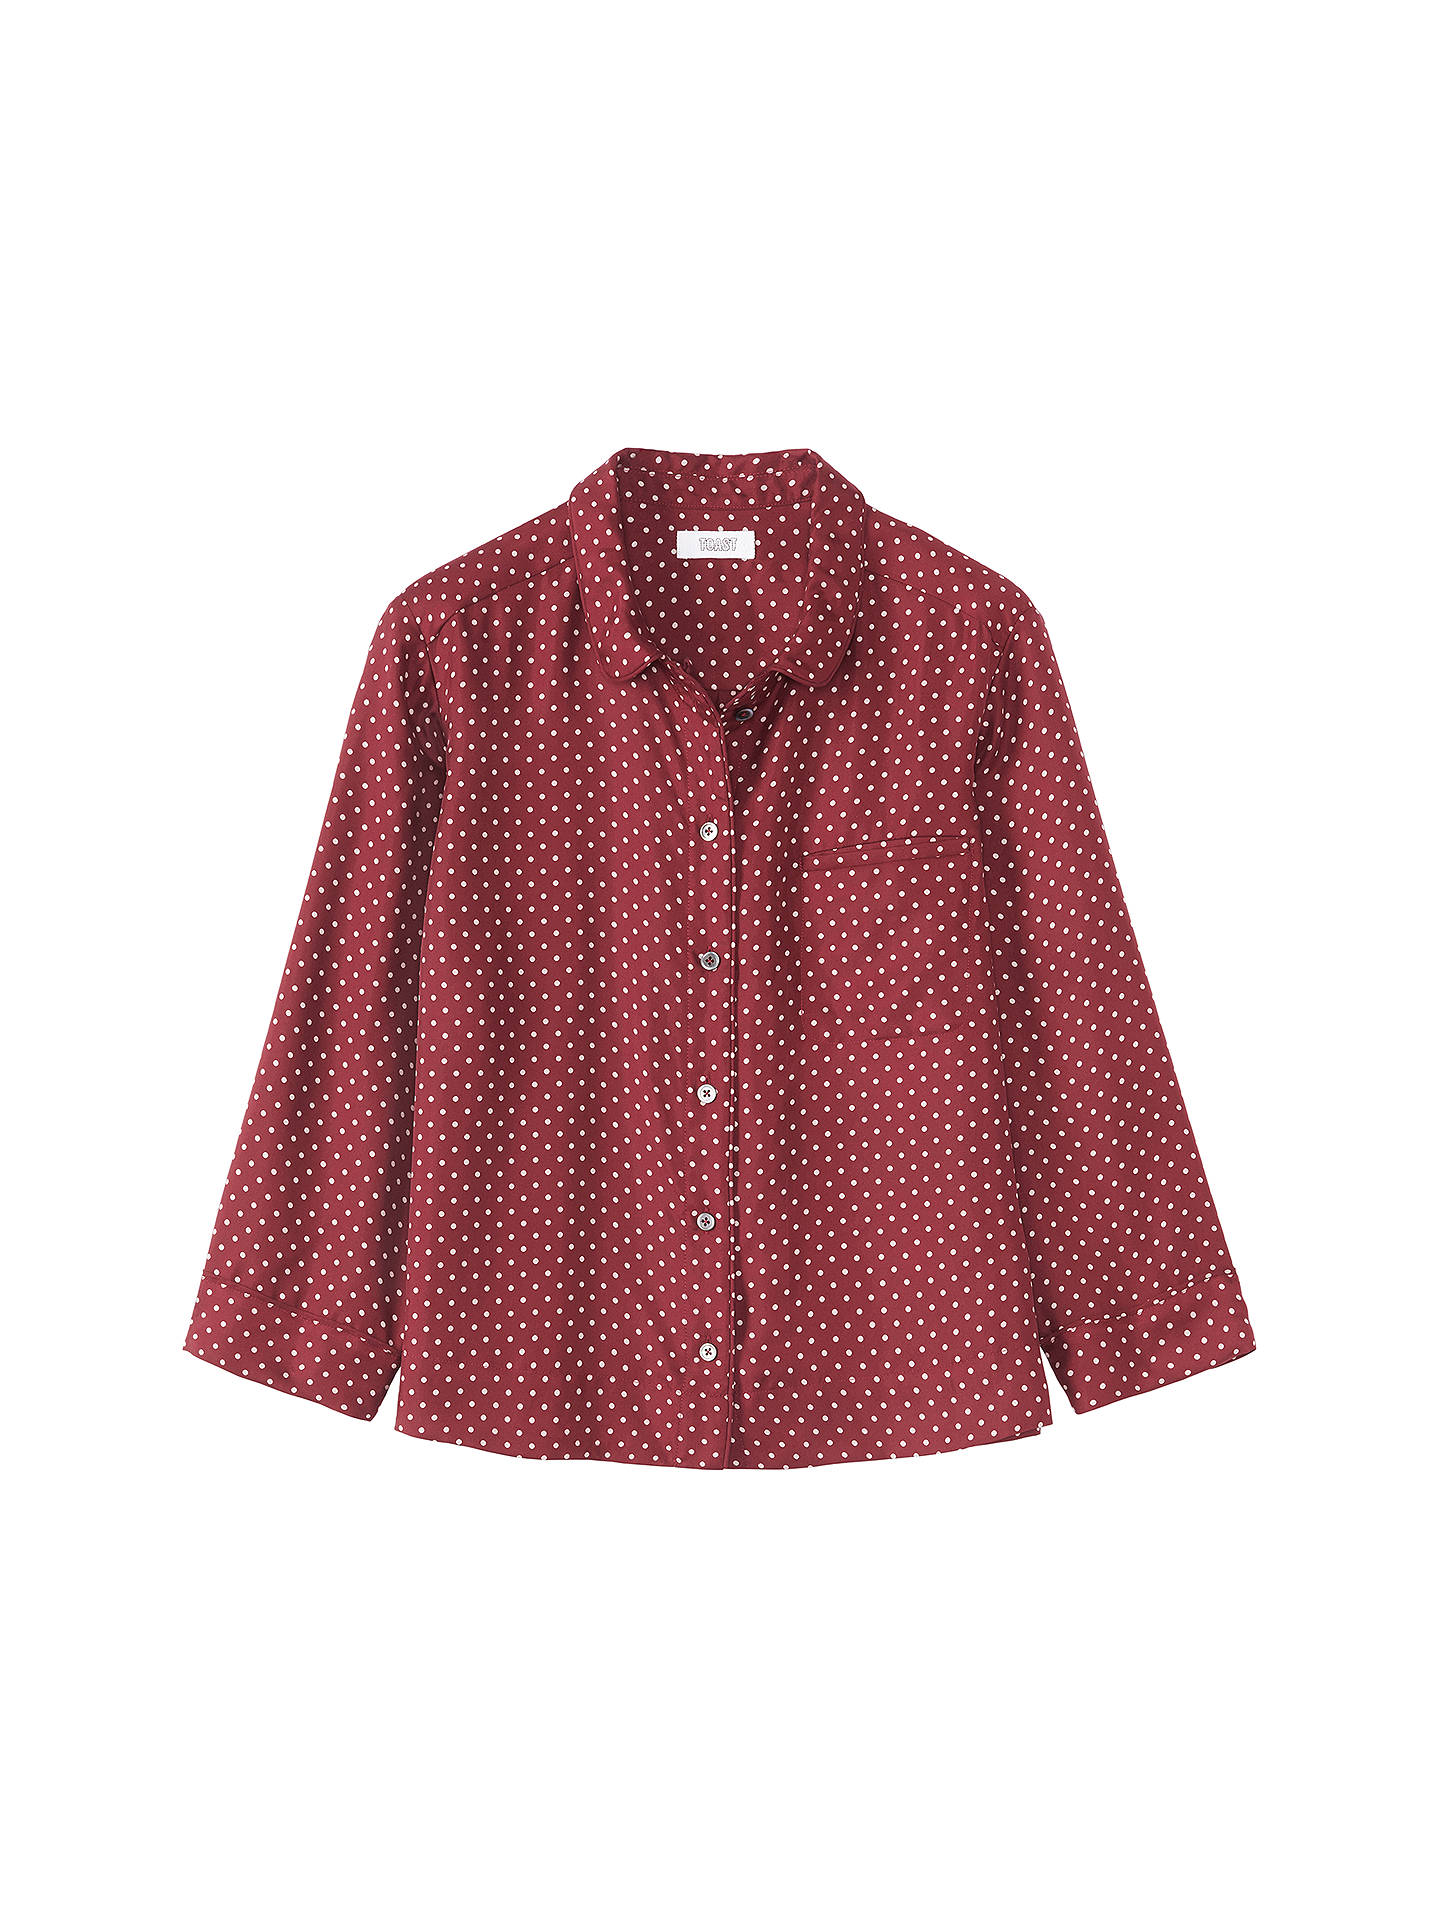 BuyToast Polka Dot Print Silk Top, Carnelian, 8 Online at johnlewis.com